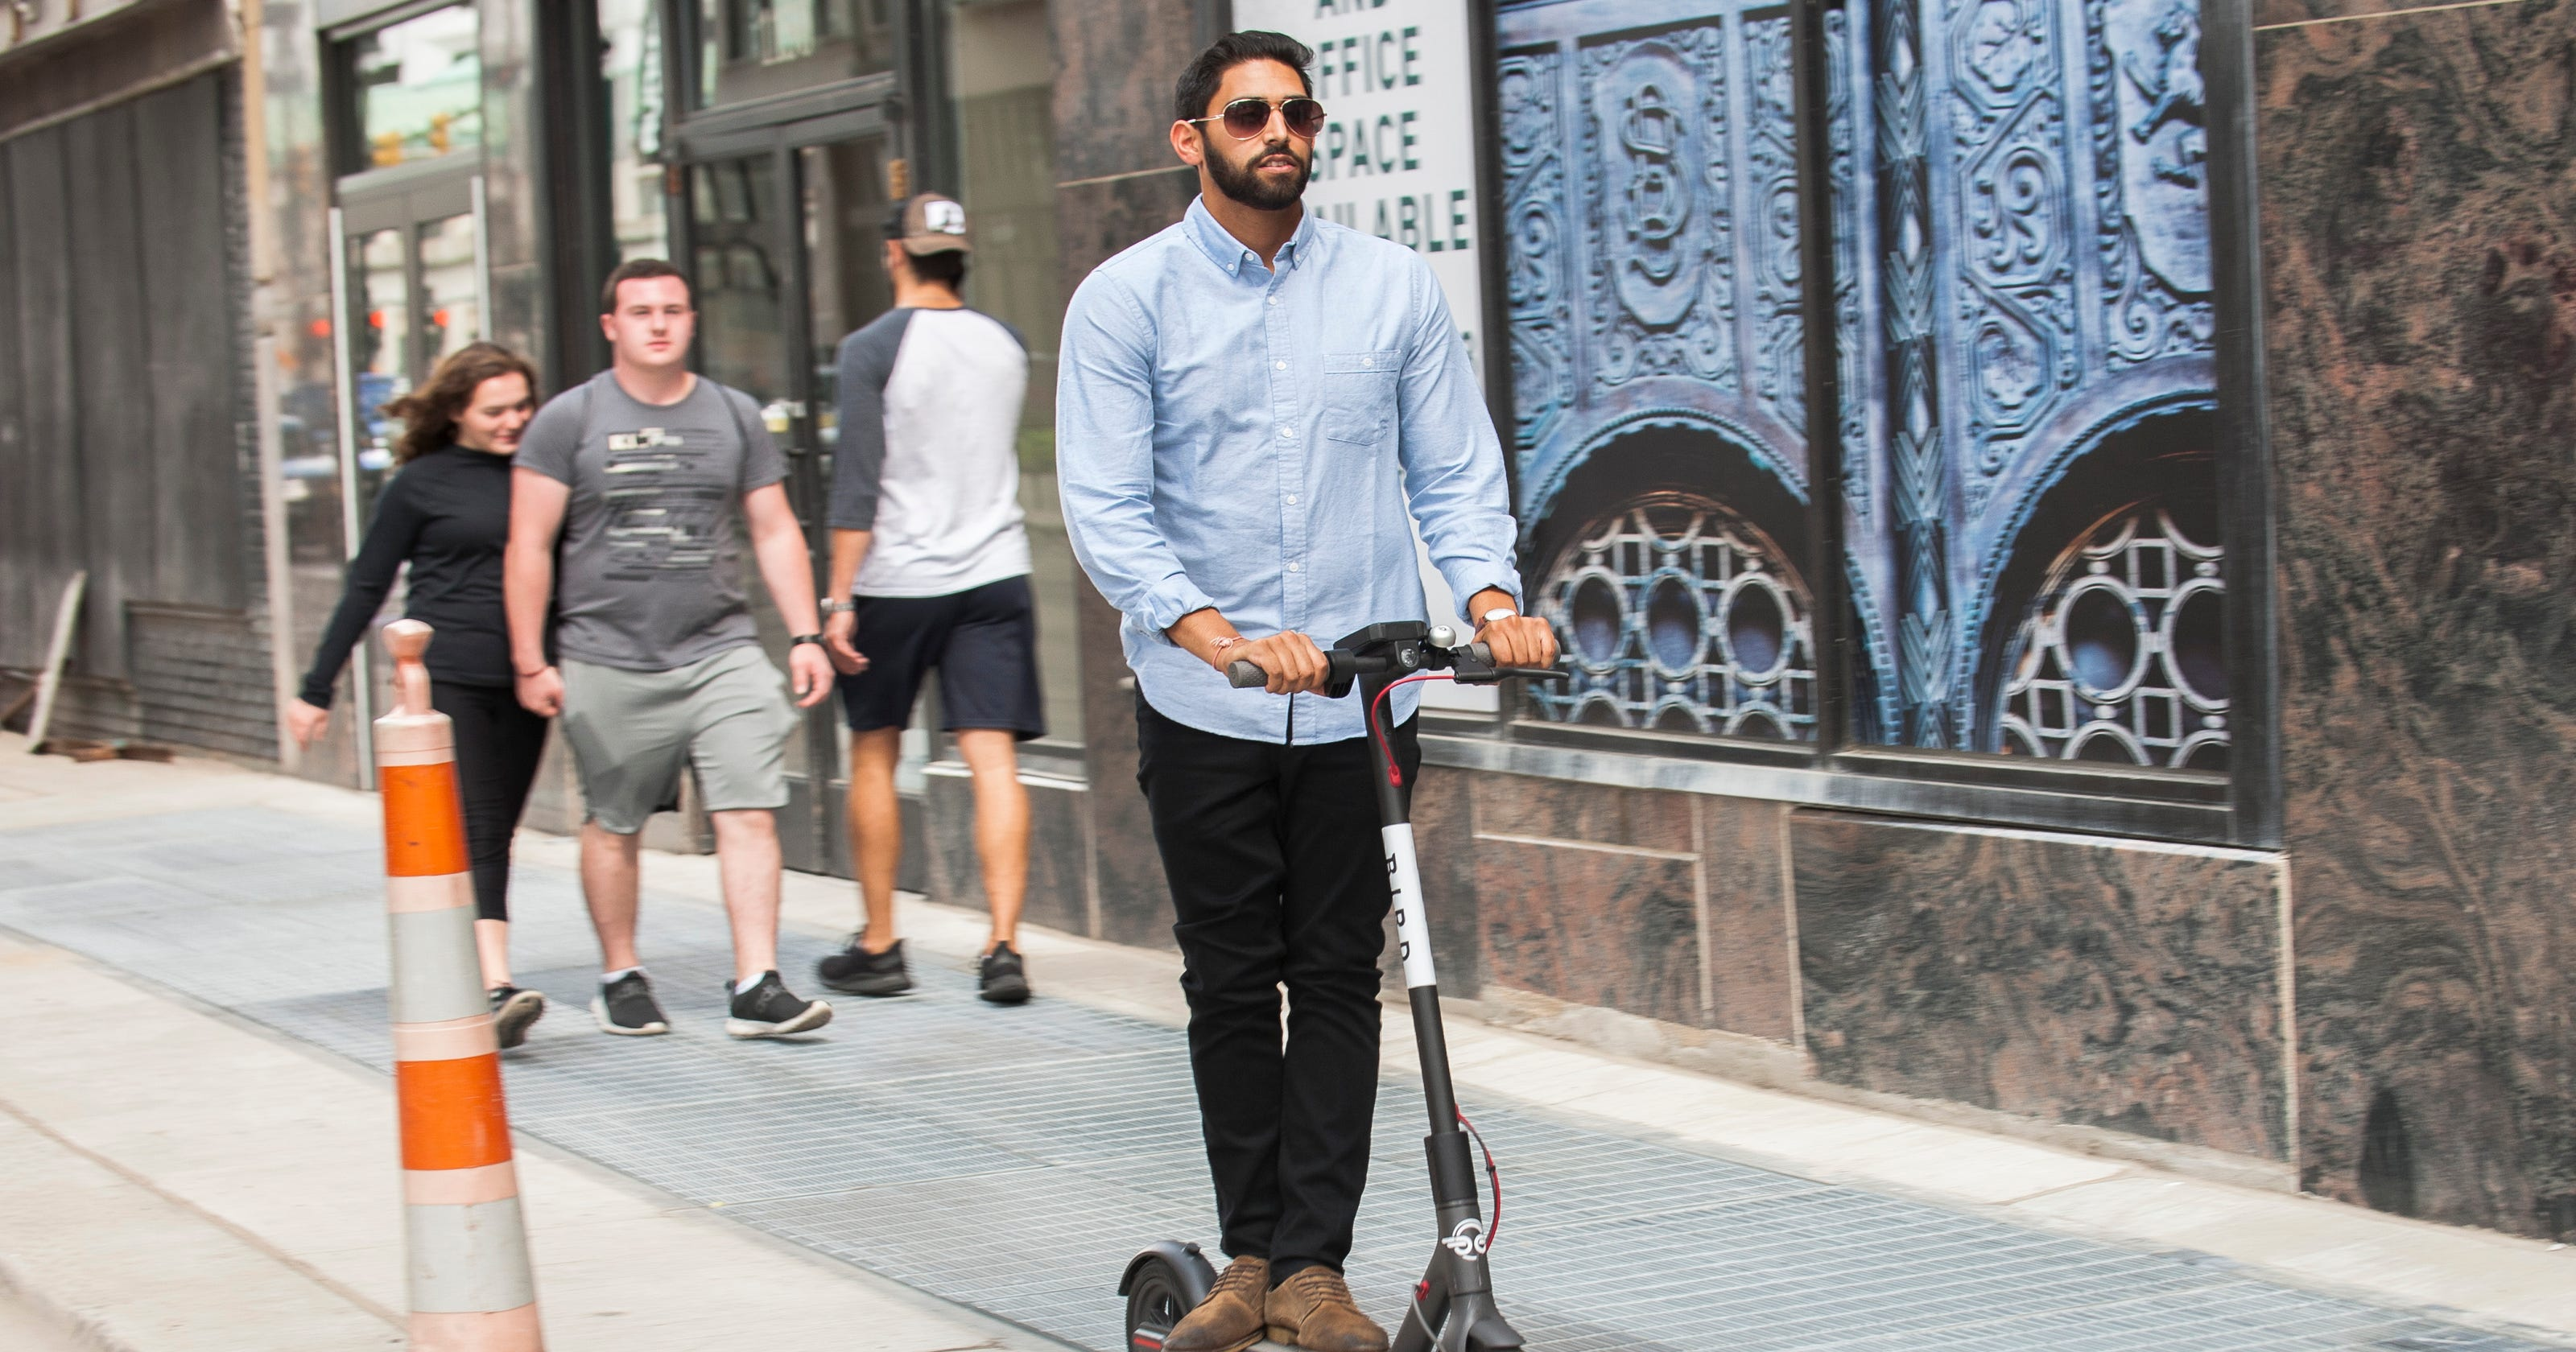 Bird Introduces Electric Scooter Share Program To Downtown